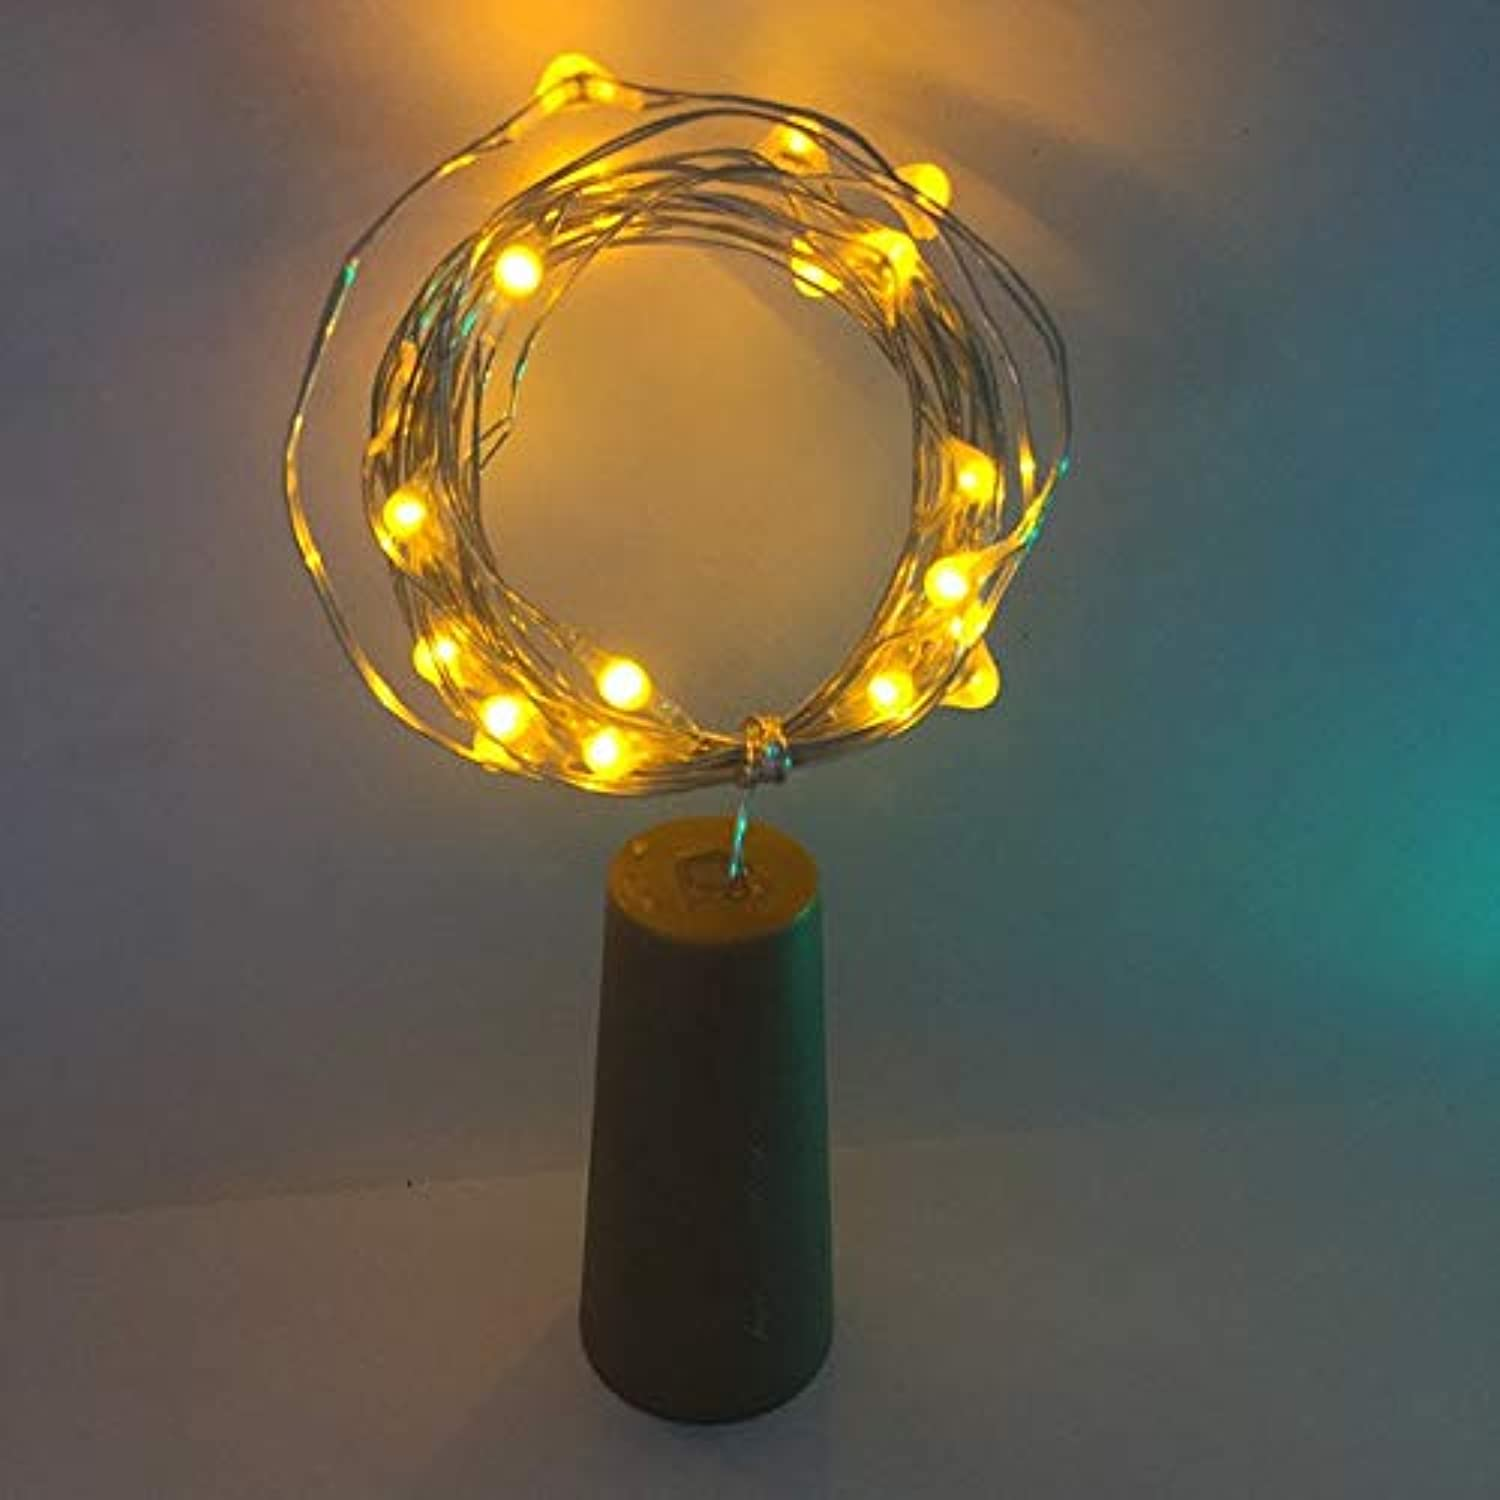 Yellow   6PCS2m 20LED Copper Wire String Light with Bottle Stopper for Glass Craft Bottle Valentines Wedding Decoration Lamp Party